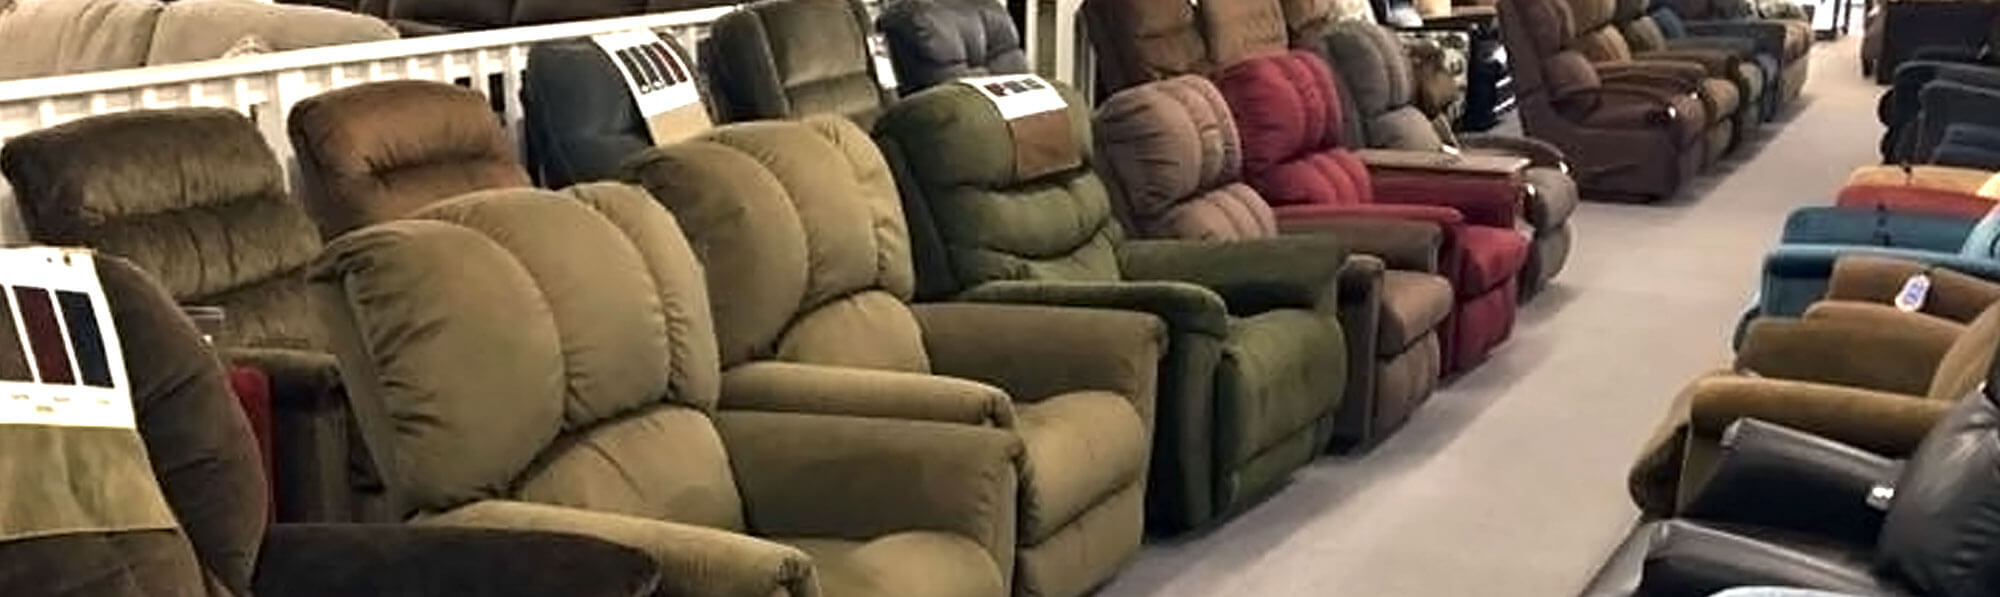 Rows of reclining chairs at Lin Furniture in Little Falls, MN